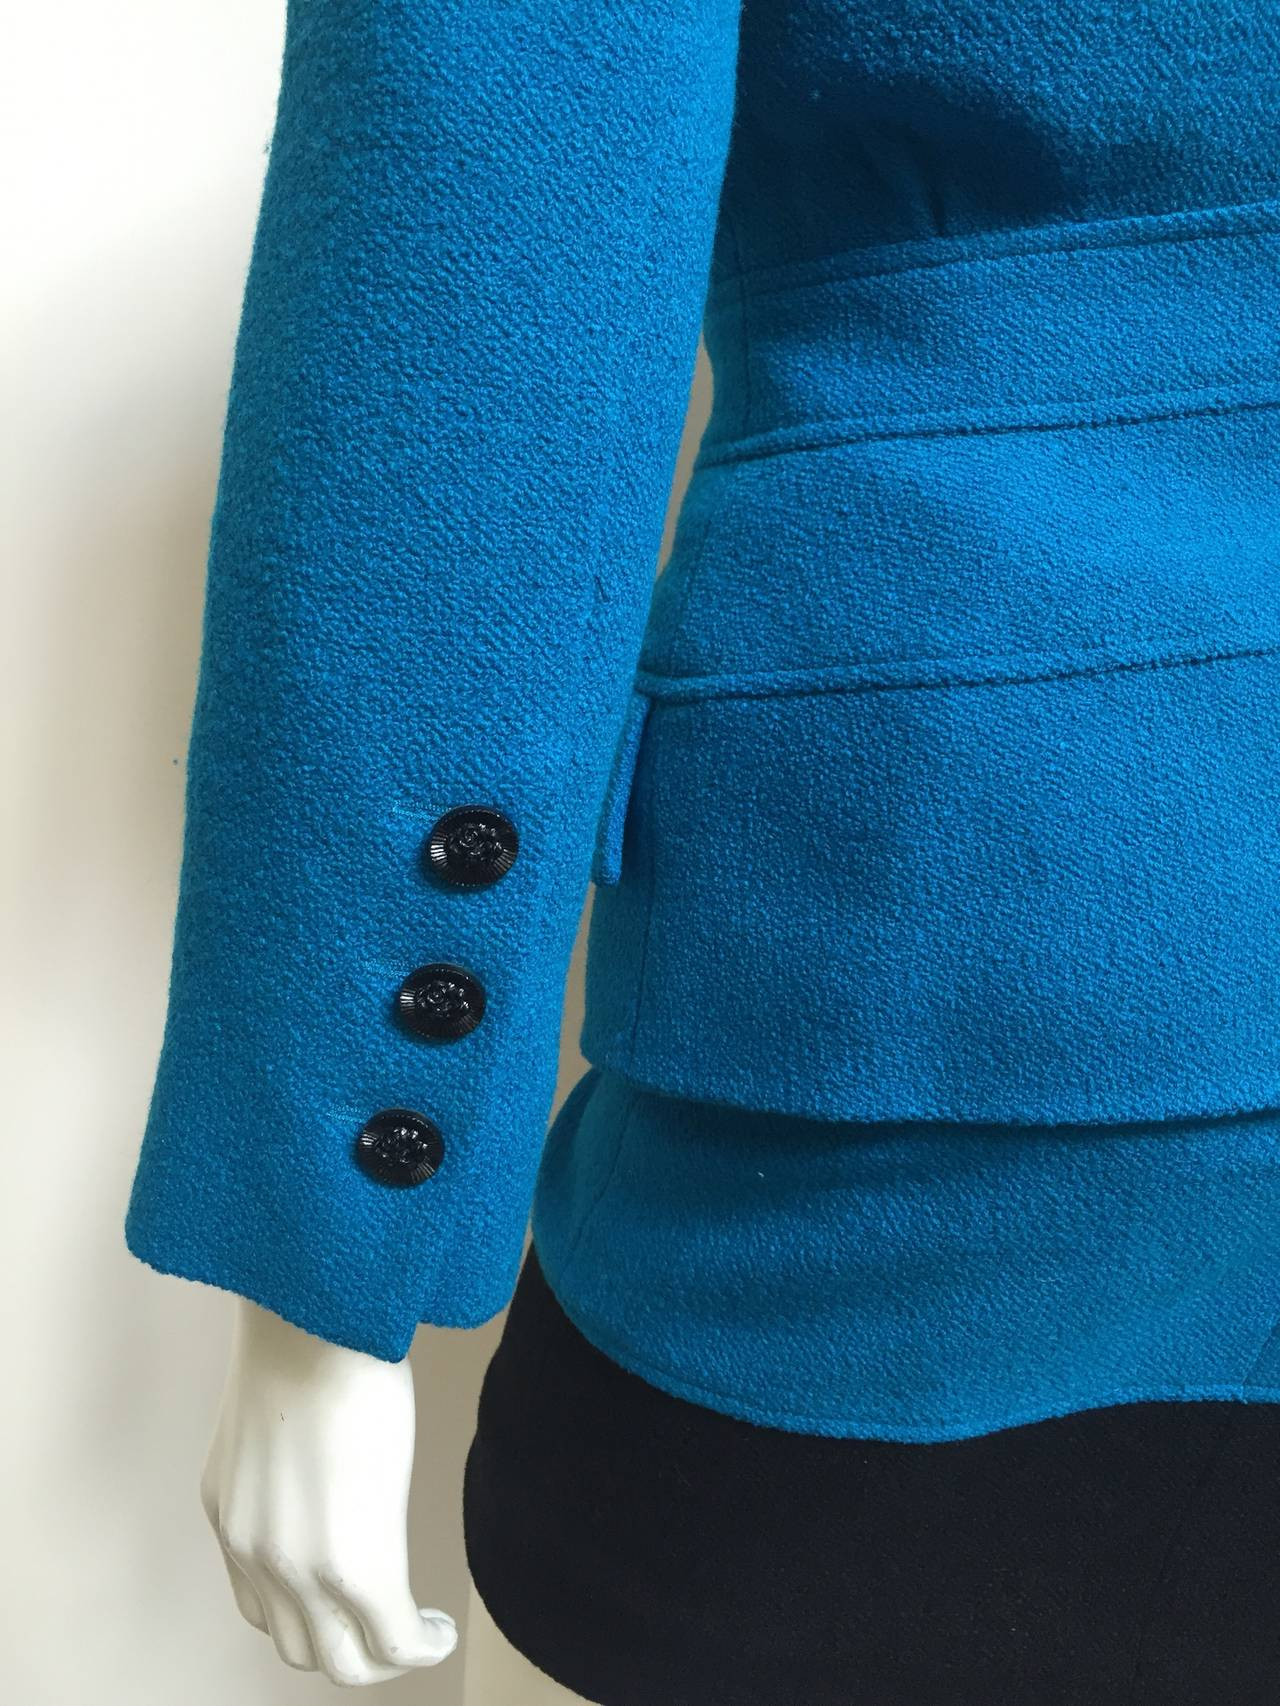 Karl Lagerfeld 80s Wool Skirt Suit Size 4. For Sale 2